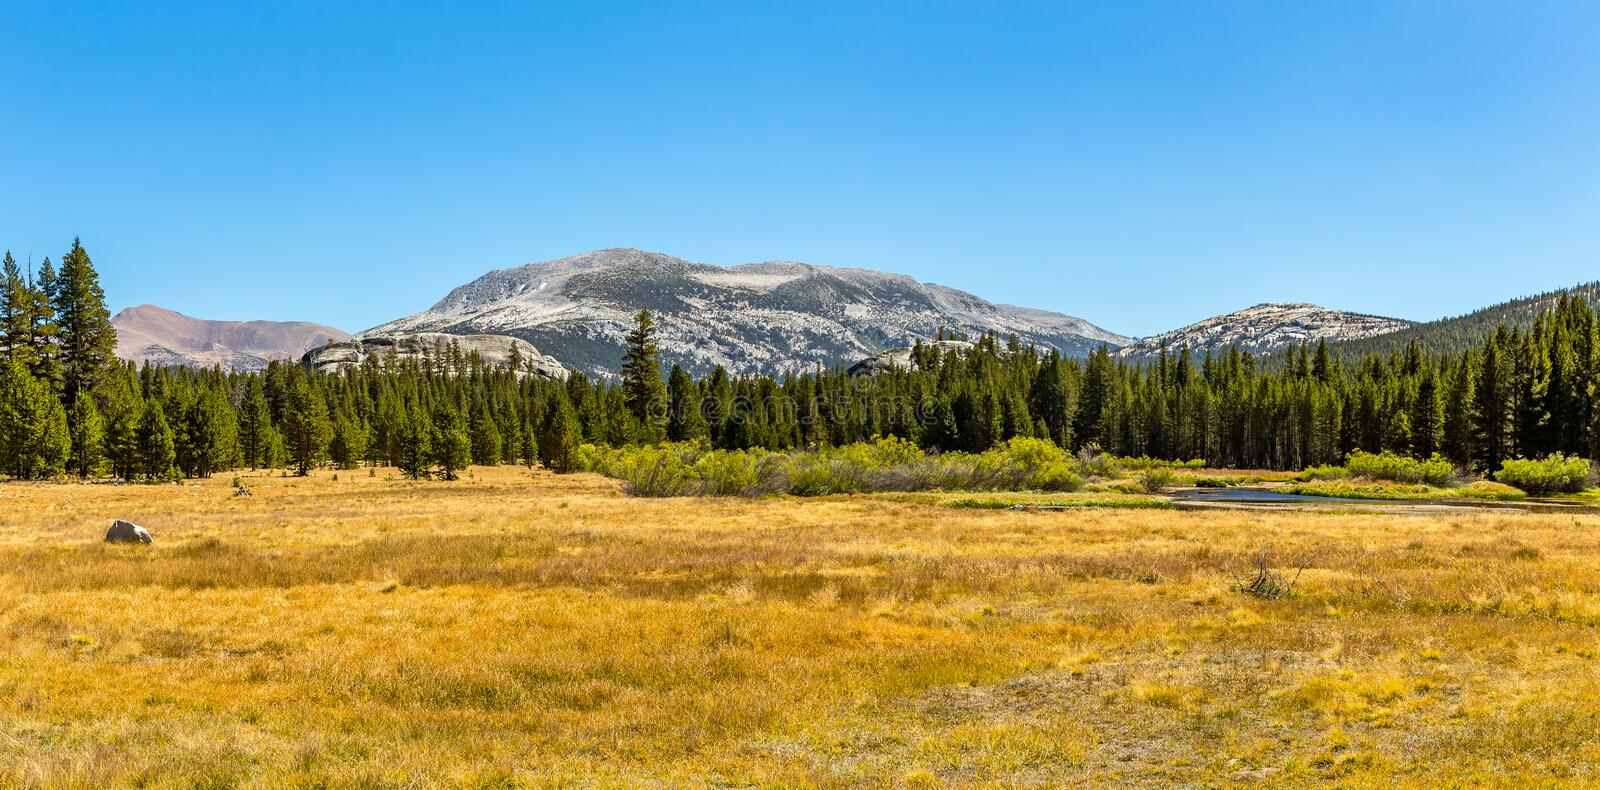 Mammoth Peak from Dana Fork. Mammoth Peak is at the northern end of the Kuna Crest in Yosemite National Park, very close to CA State route 120. Its summit royalty free stock image